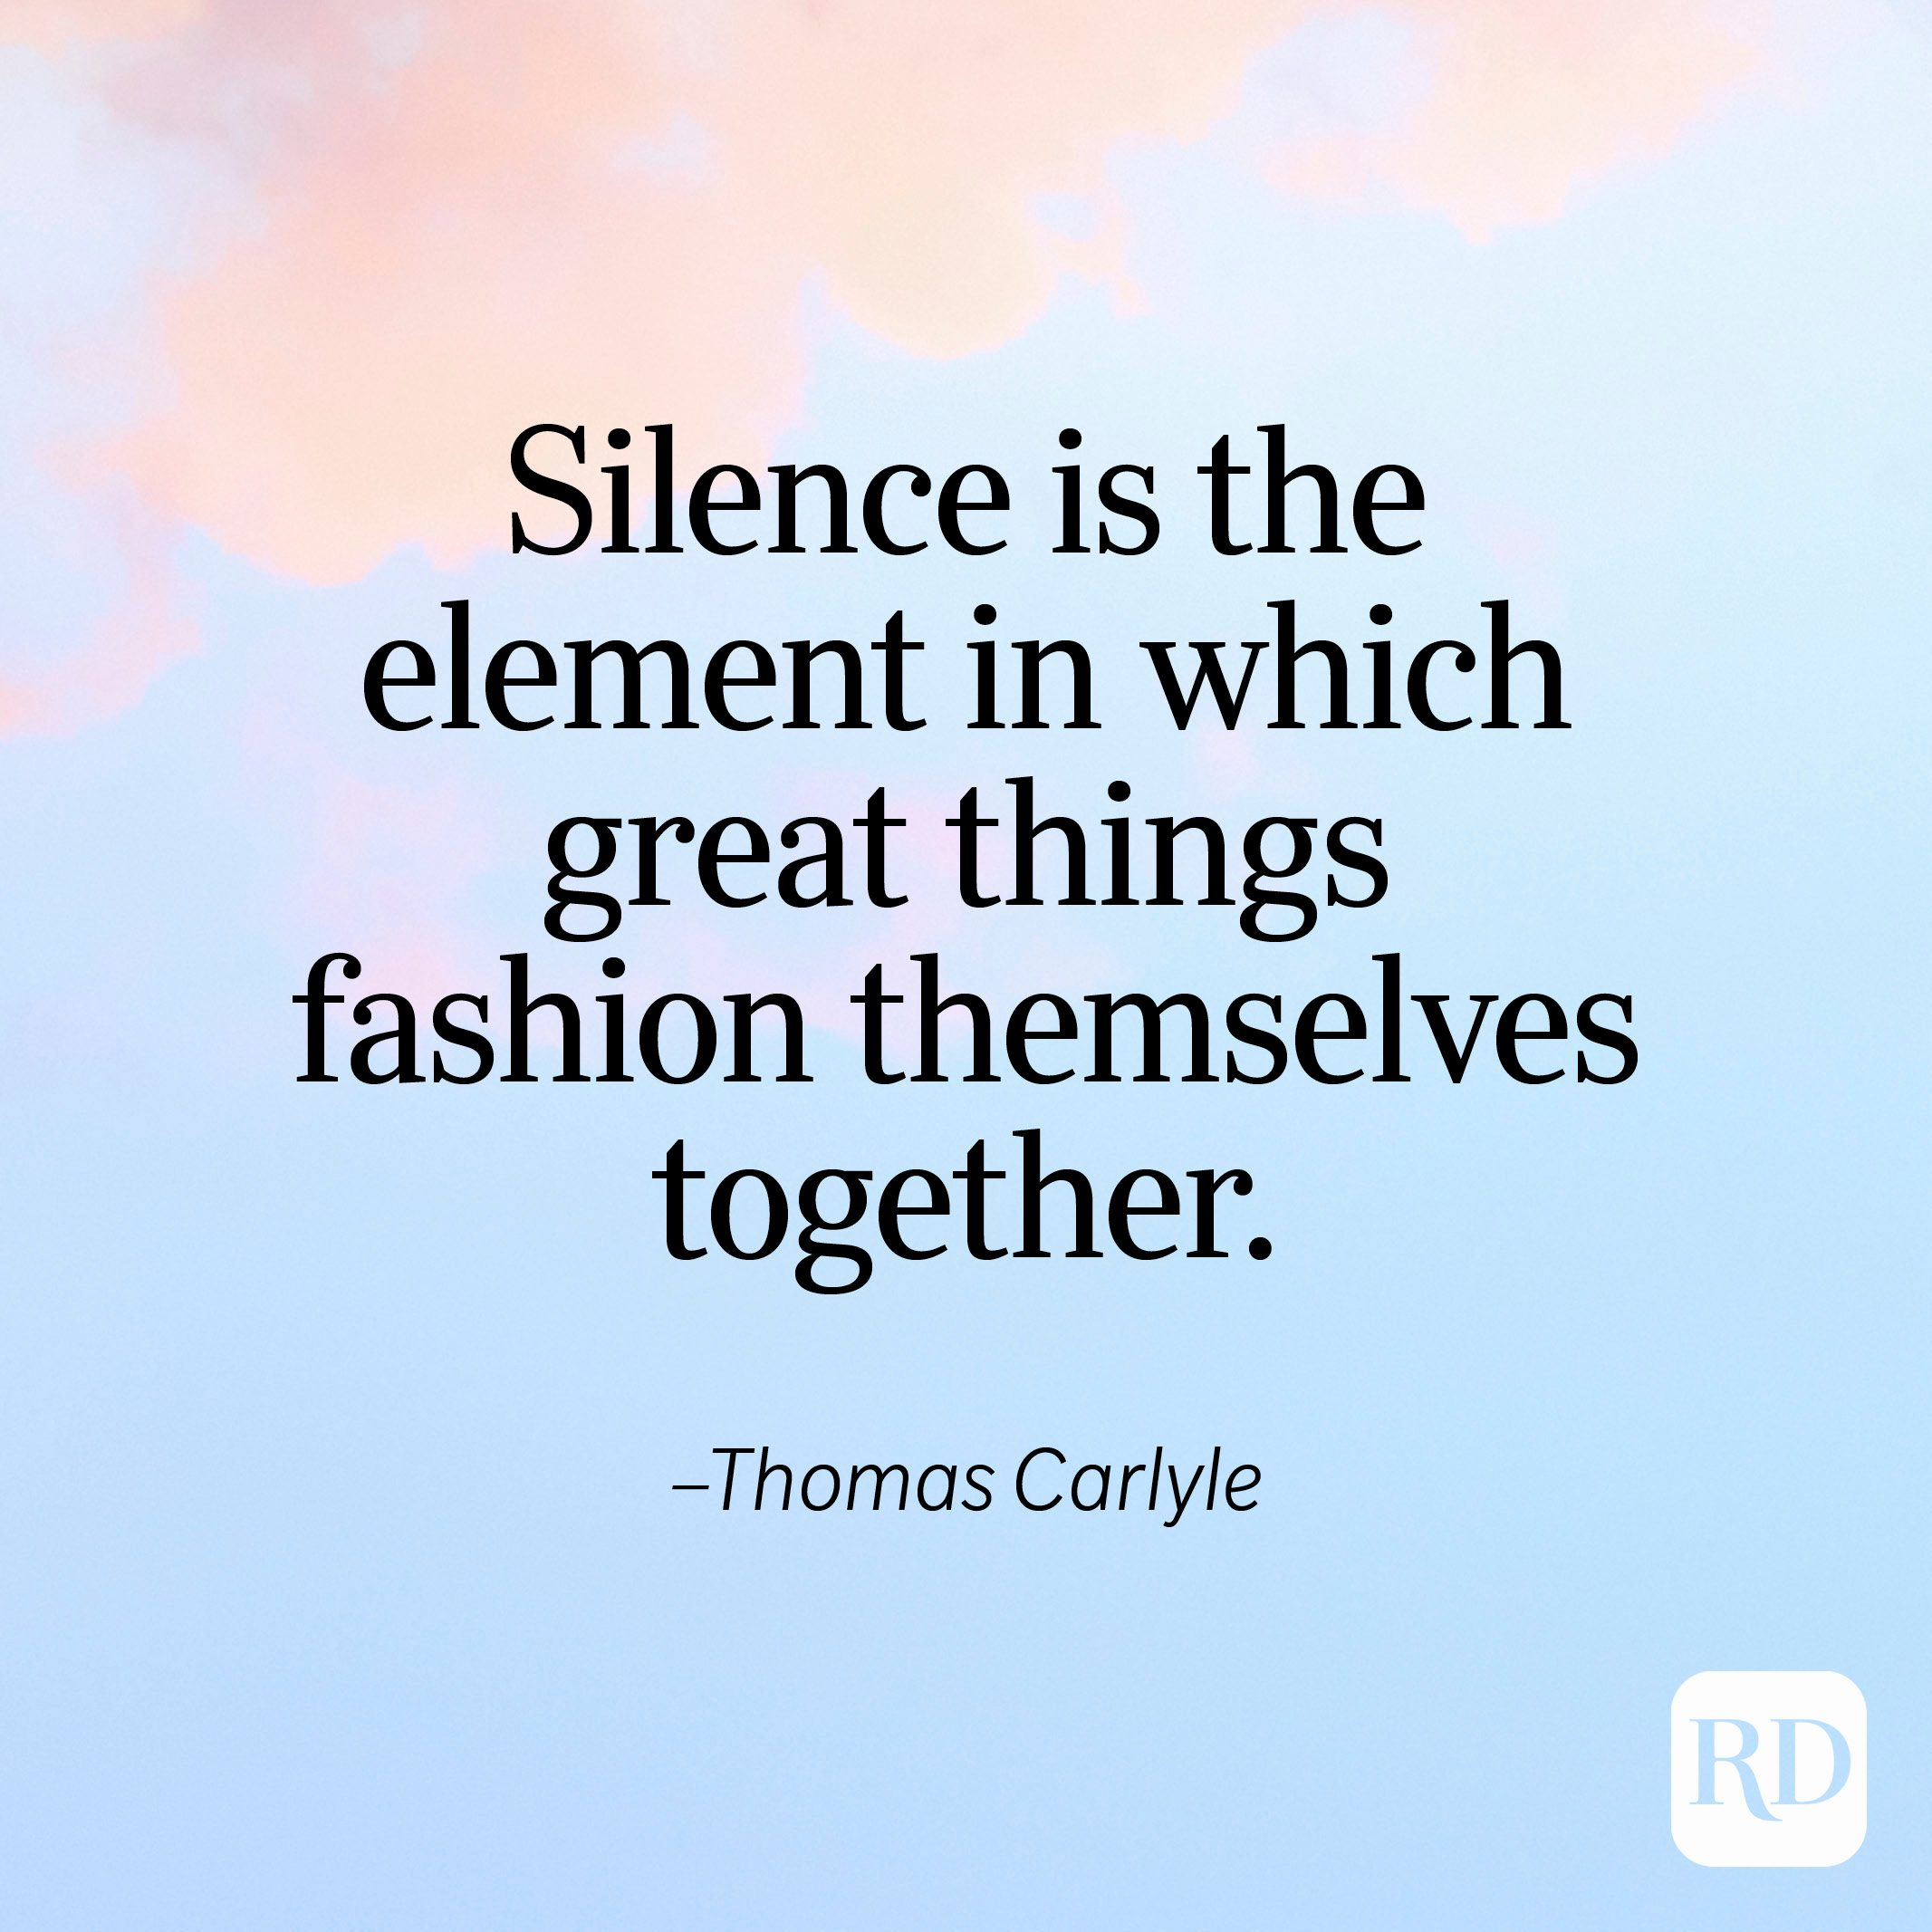 """""""Silence is the element in which great things fashion themselves together."""" —Thomas Carlyle"""